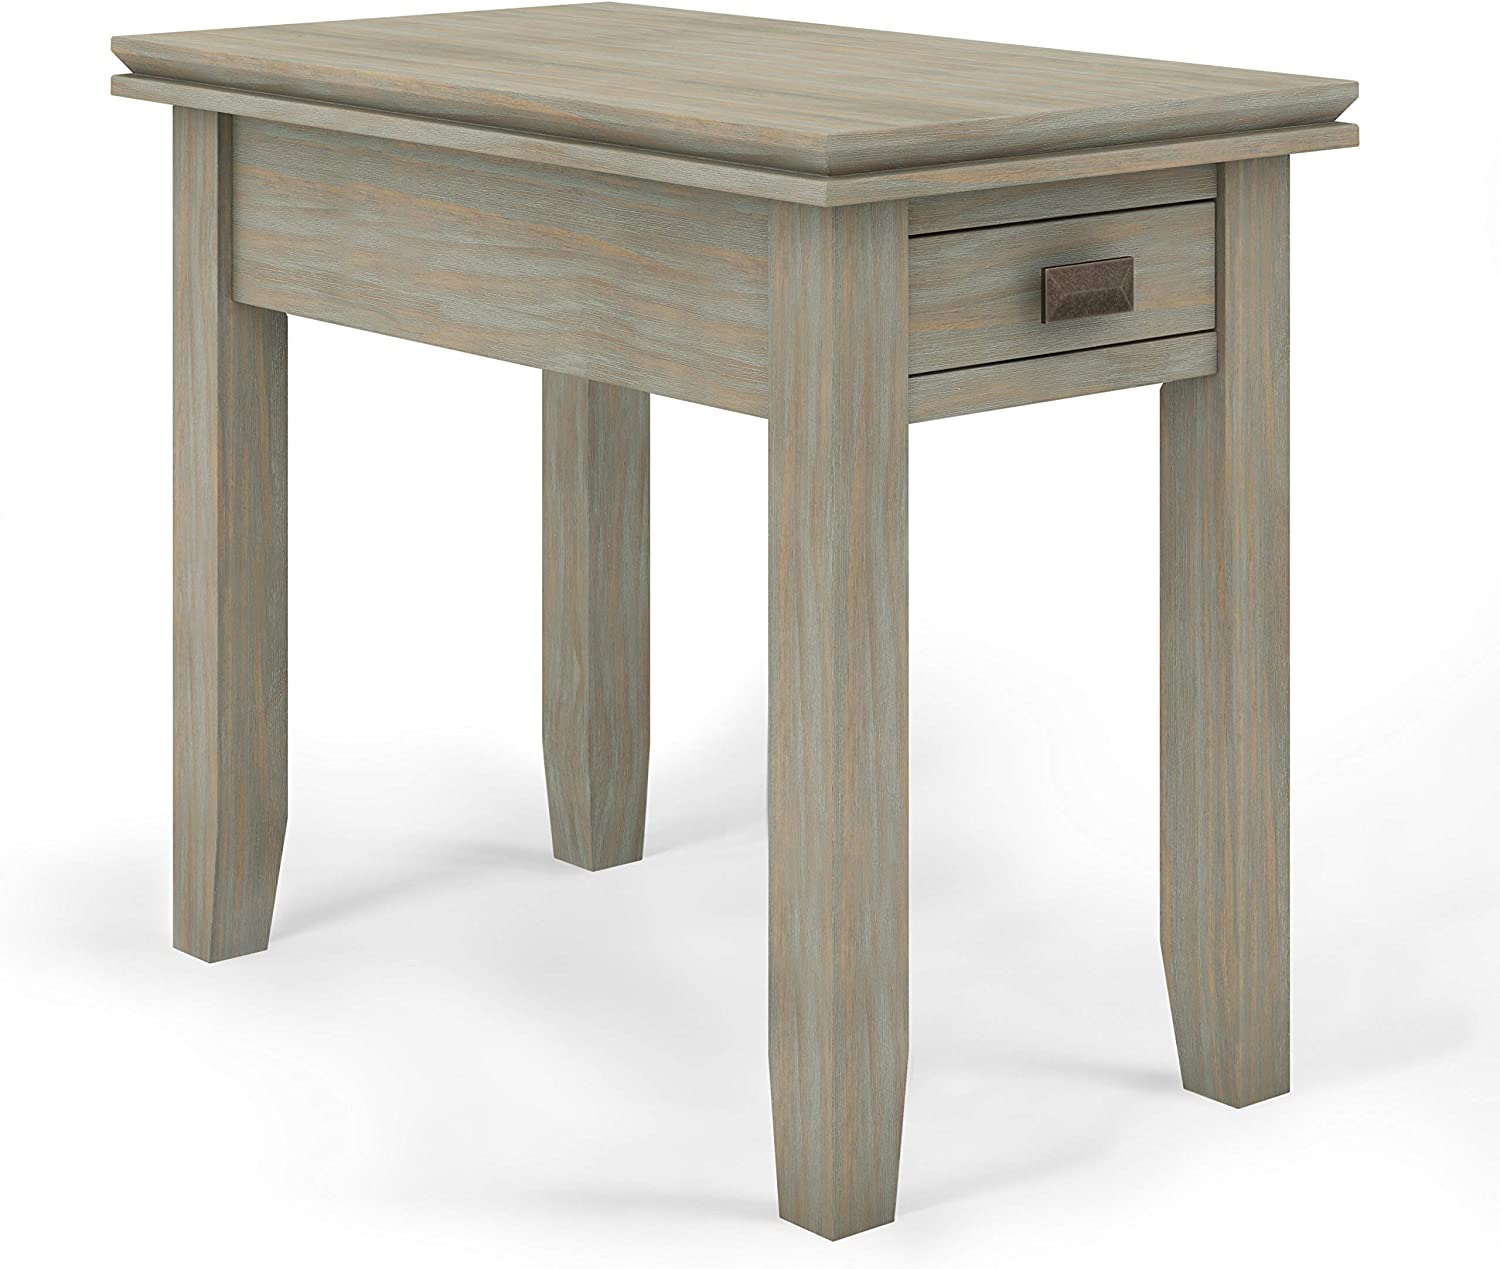 SIMPLIHOME Artisan SOLID WOOD 14 inch Wide Rectangle Contemporary Narrow Side Table in Distressed Grey